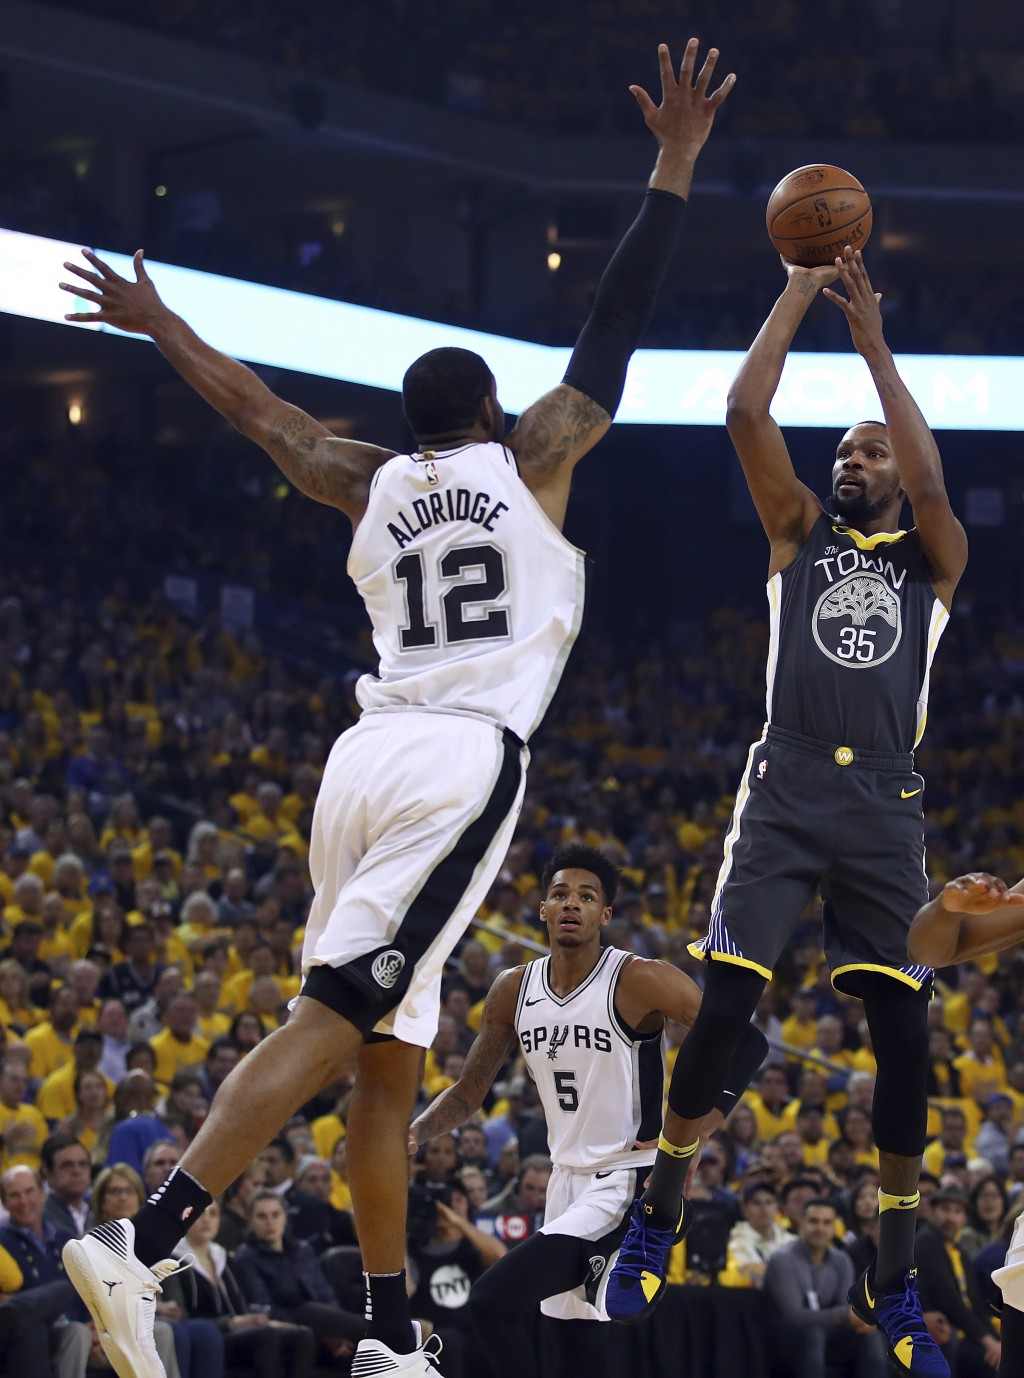 Golden State Warriors' Kevin Durant, right, shoots against San Antonio Spurs' LaMarcus Aldridge (12) during the first quarter in Game 2 of a first-rou